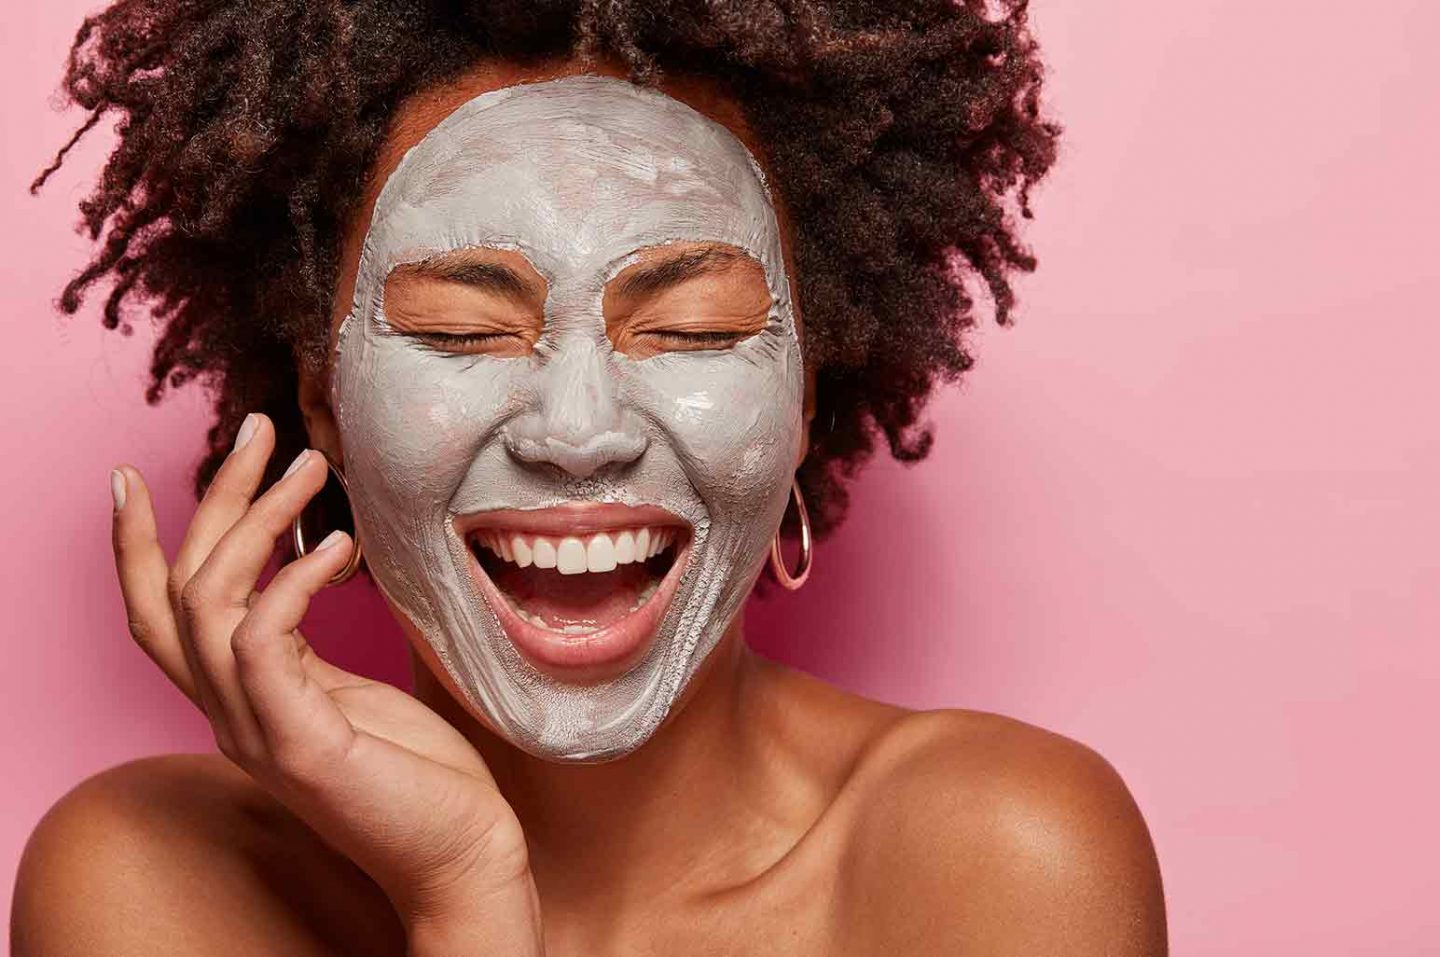 Skin Care and Maintenance Tips